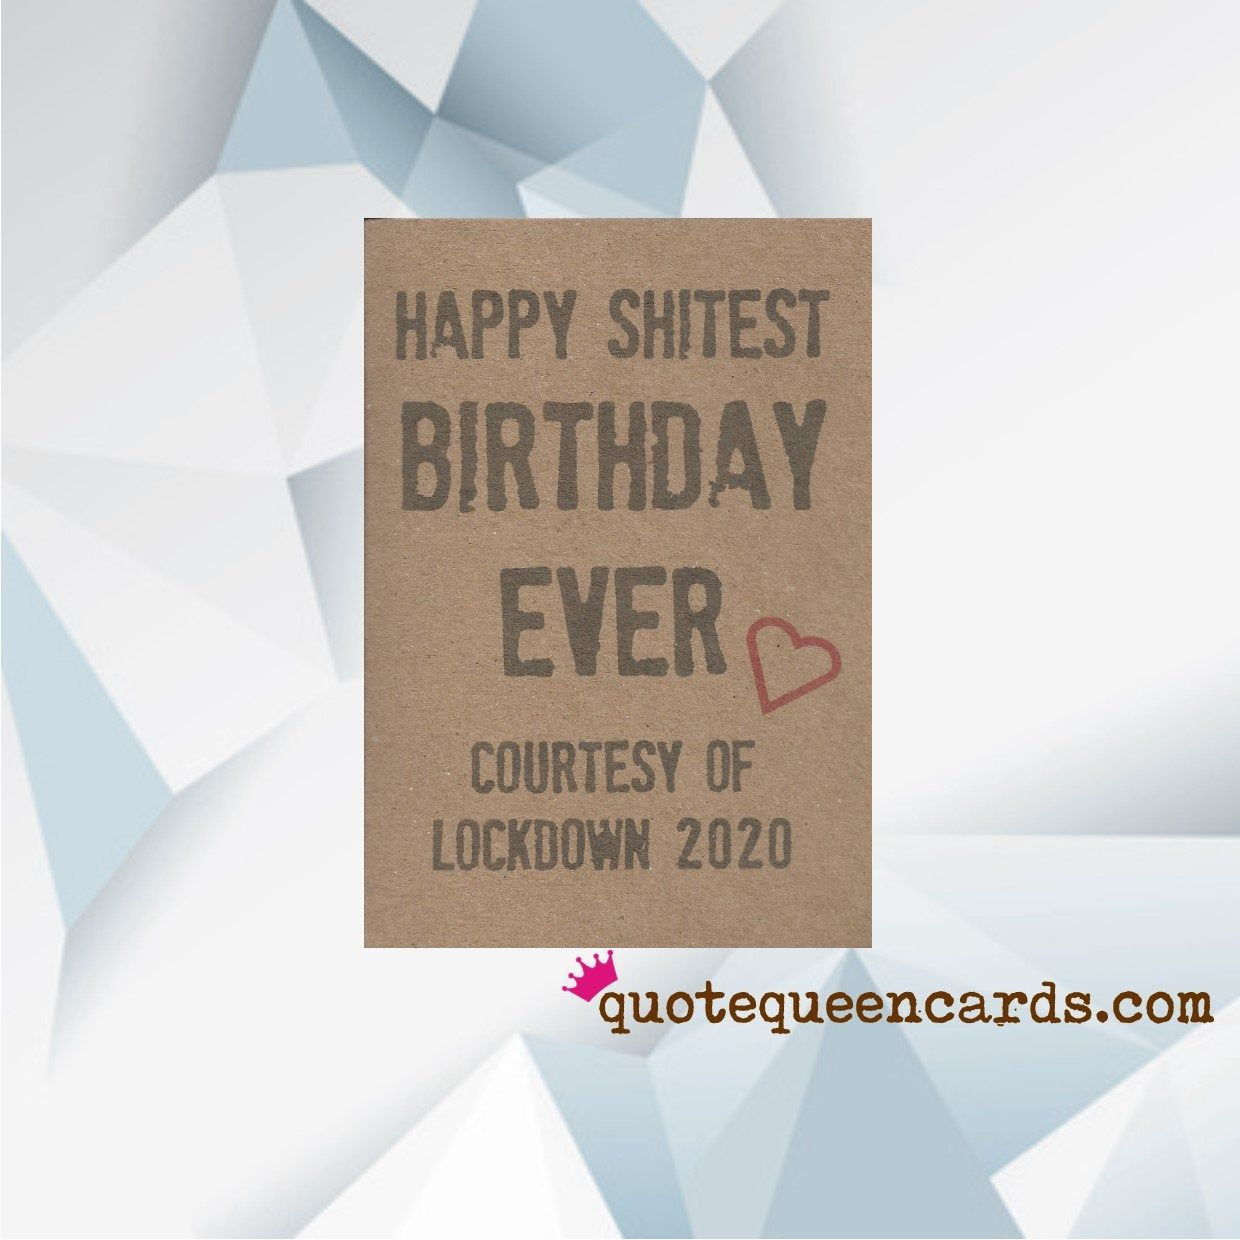 LOCKDOWN BIRTHDAY CARD, For Her, More Designs At Quote